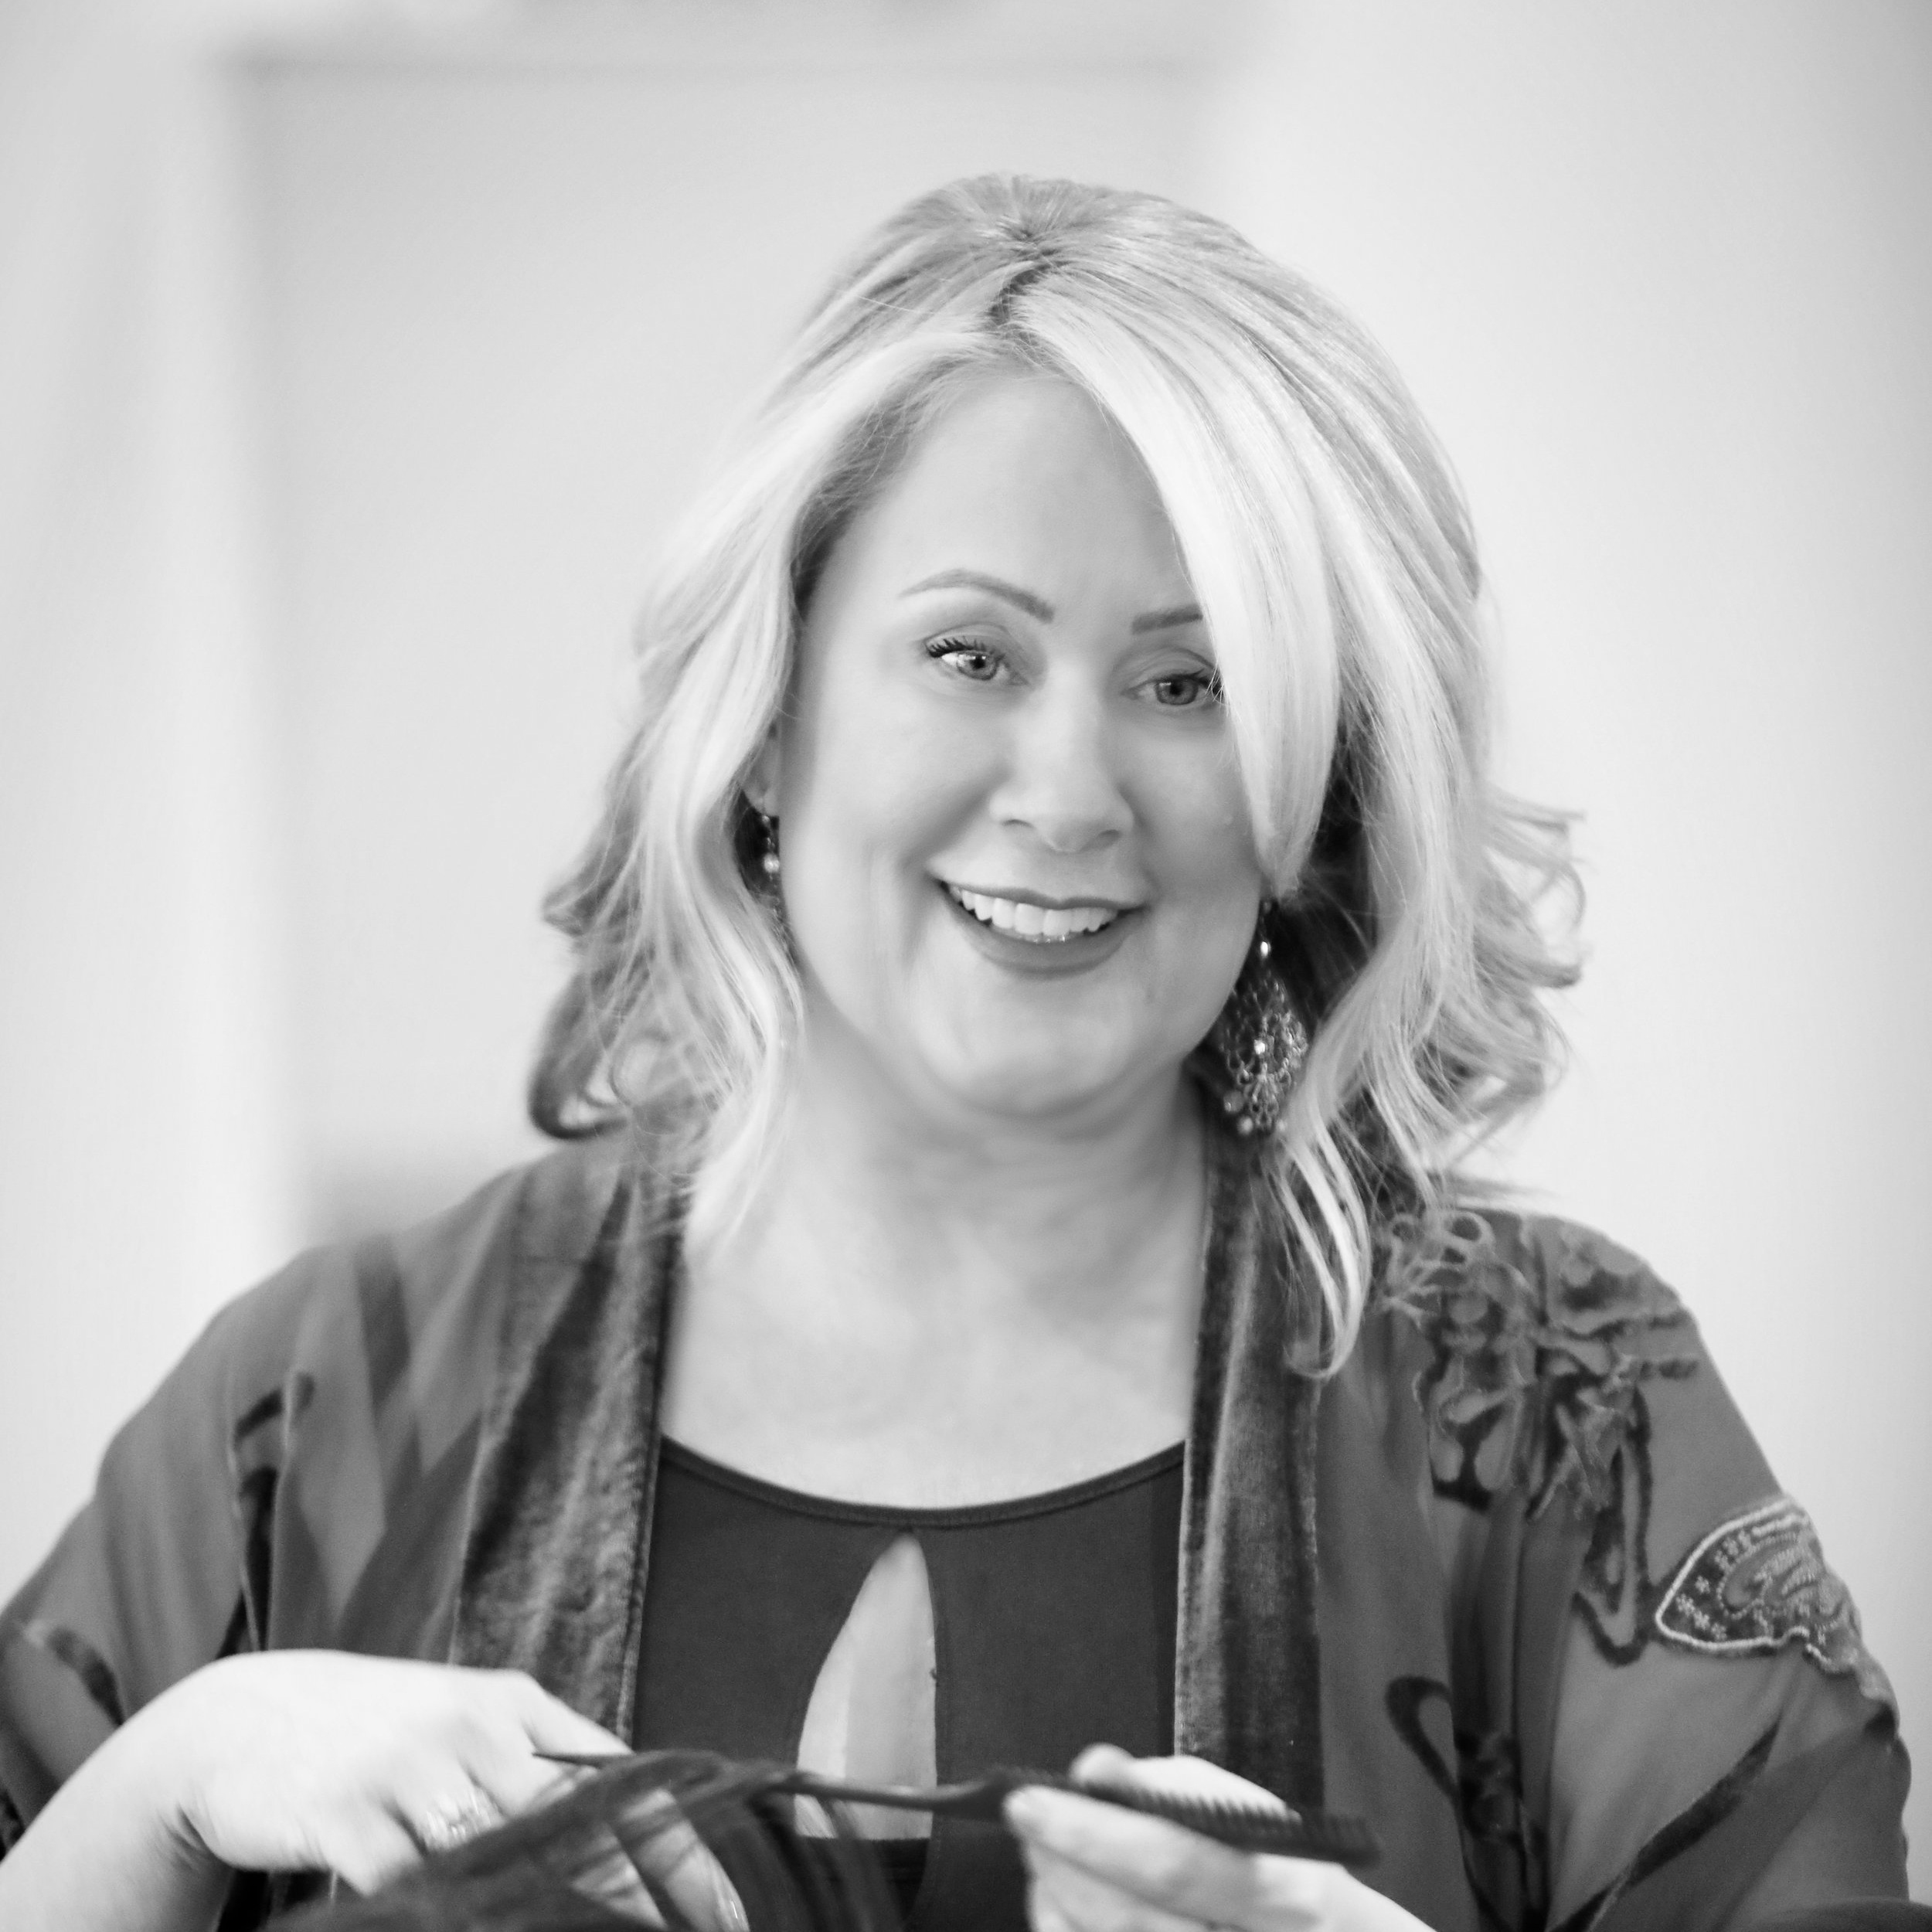 Loree Davison - My love for hair began at a young age. In my teens, I would take every opportunity given to me to cut and style my friend's and family's hair. As undeniable as my passion for hair was, I was encouraged to go to college where I received my bachelors in Psychology. After graduating, I decided to go to beauty college to help support myself through the masters program to eventually be able to do therapy(become a therapist). However, as my skills grew at beauty school, so too did the realization of how deeply fulfilled a profession in beauty (hair) made me feel. Today, my consistent(constant) desire to perfect my craft motivates me to continue my education in the hair business. The results, as well as reignited confidence I bring my clients, fuels my passion for the art of hair. I specialize in color, though I do it all when it comes to hair. I especially love dimensional color, covering gray, reds, and all shades of blonde. I ensure a very natural, long-lasting look no matter your color. I am trained and certified in Schwarzkopf color and have the pleasure of being a hairstylist at Gold and Braid in Mission Viejo, Ca.Her work can be seen here: @hairbyloree